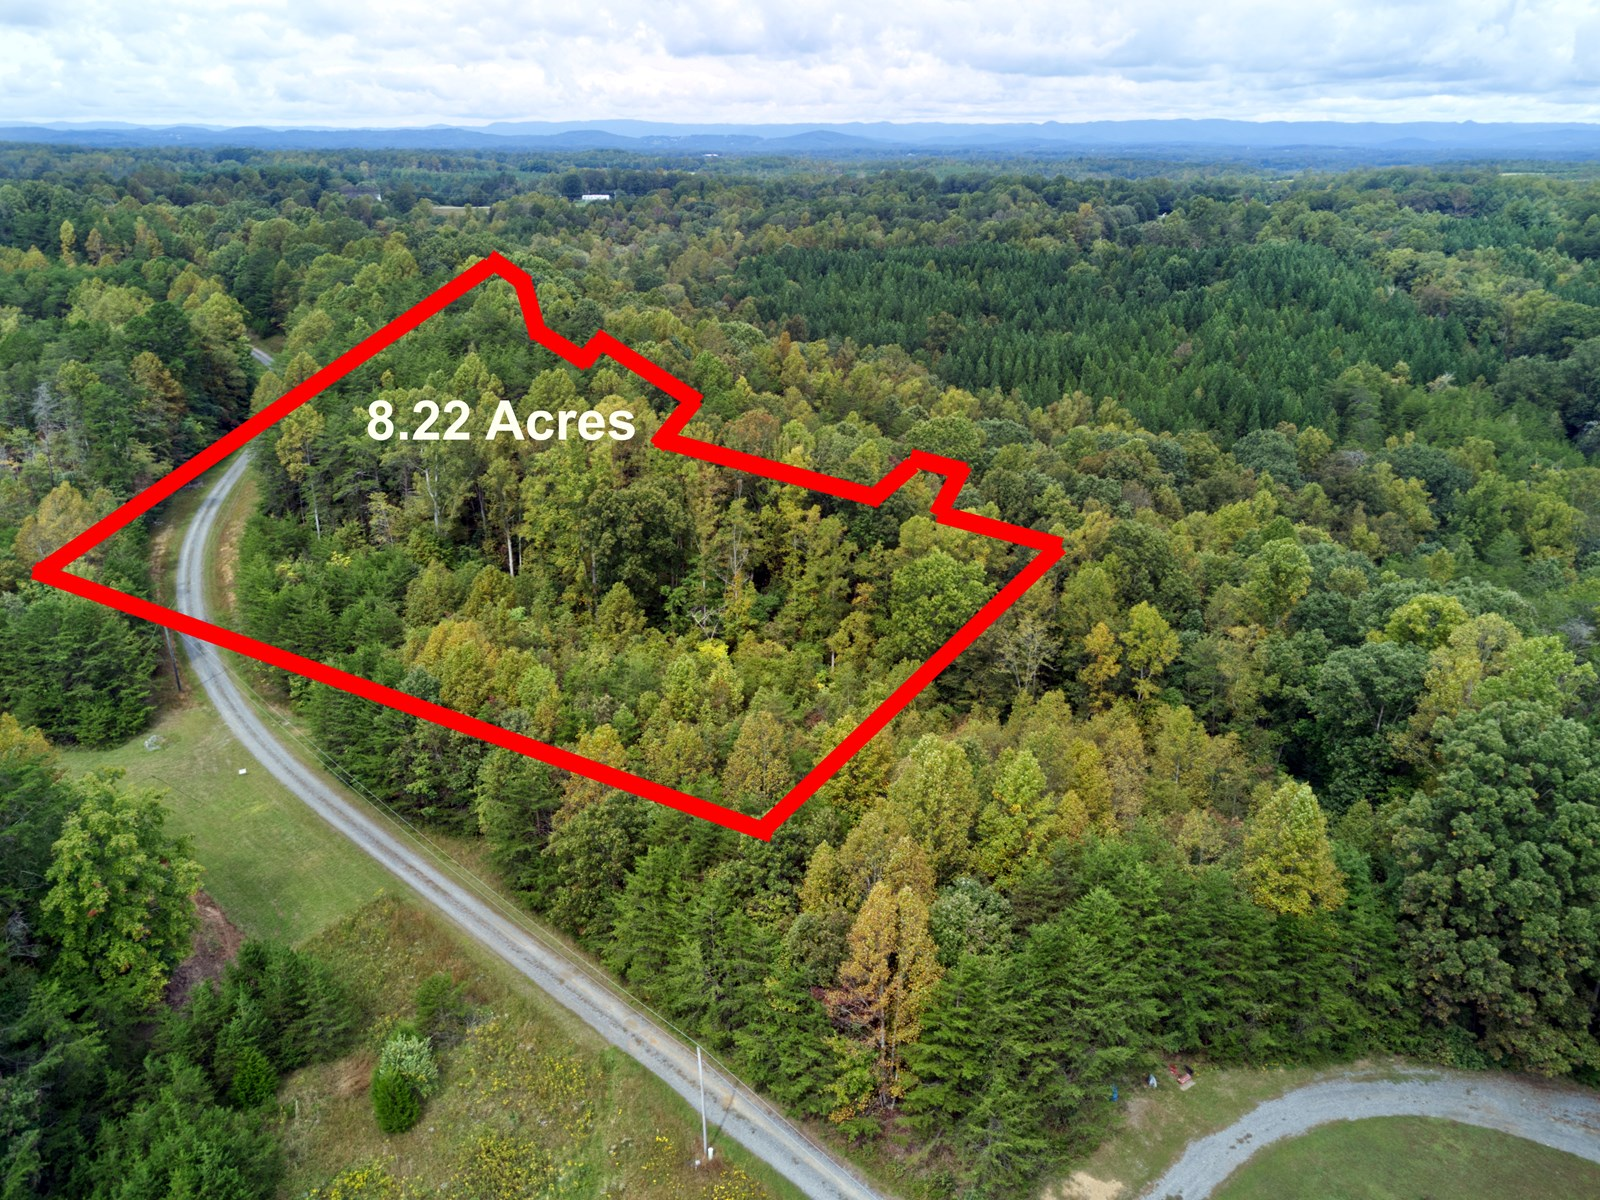 Land For Sale Pilot Mountain, NC 27041